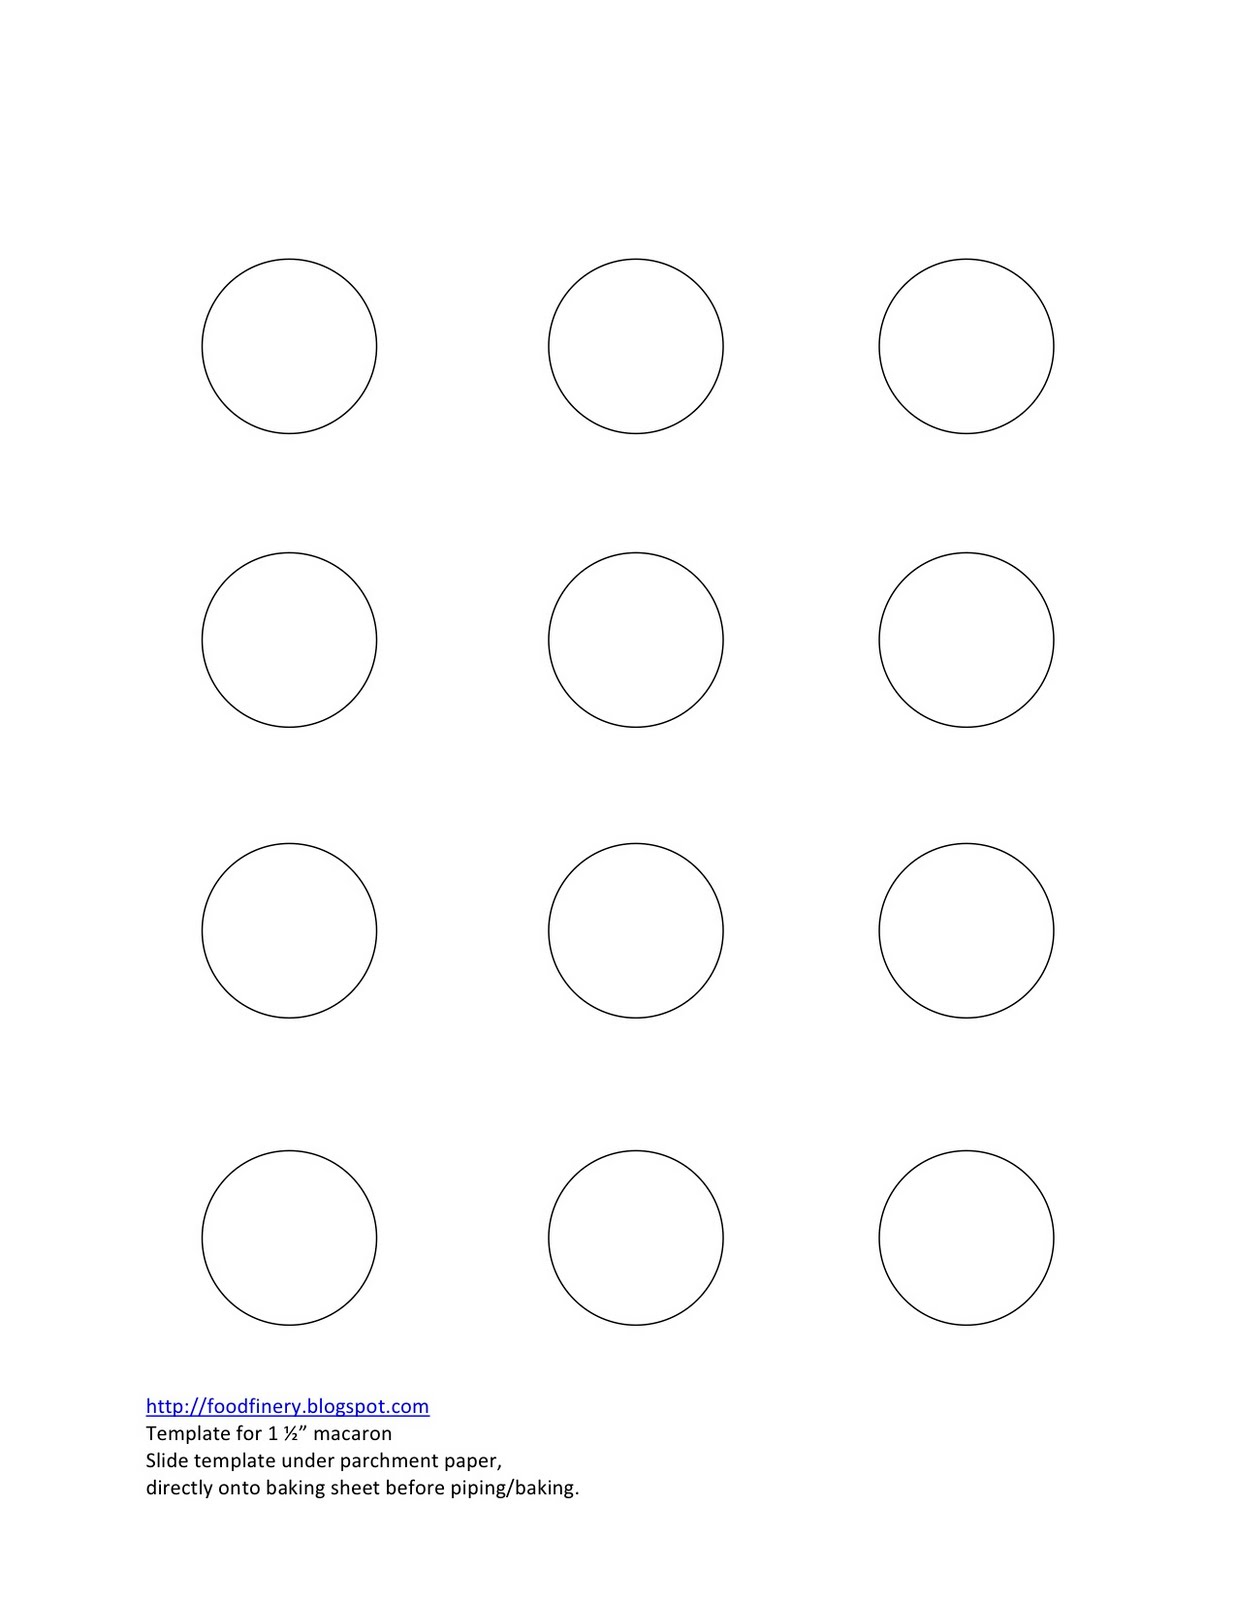 Printable Macaron Piping Template from southernfatty.com